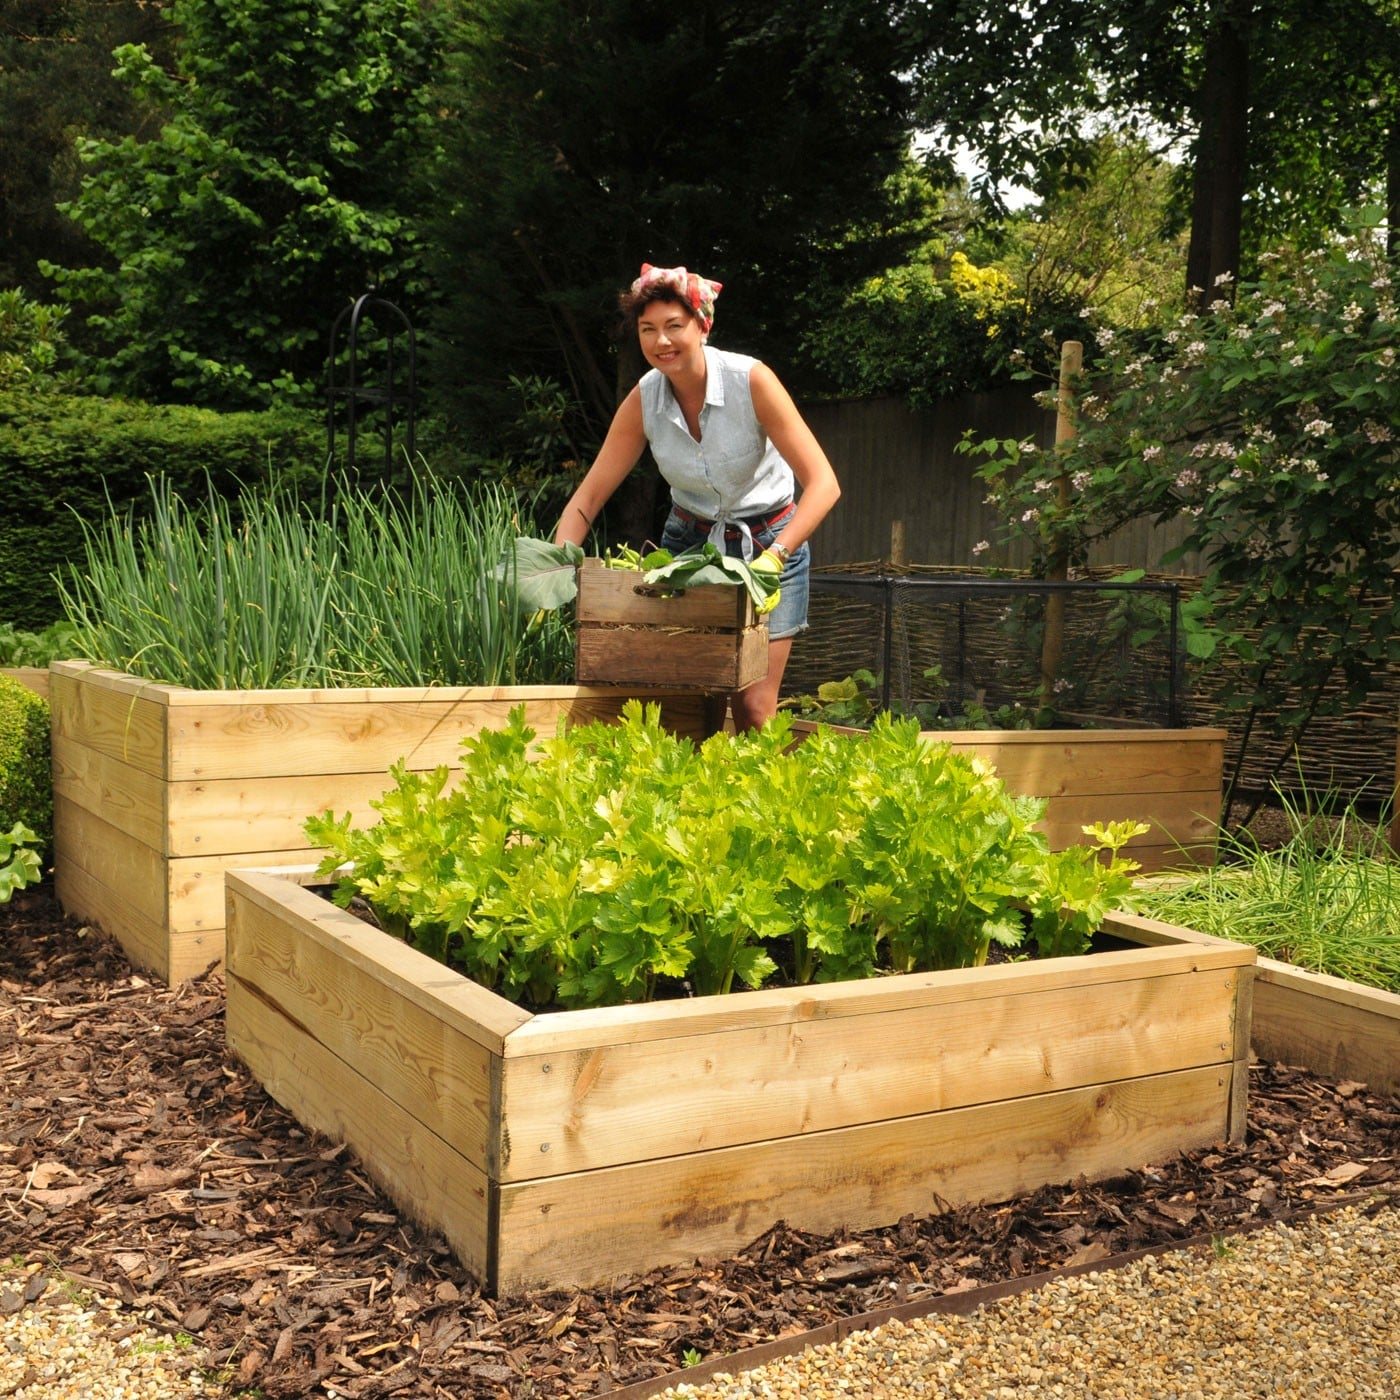 Raised Vegitable Planter - Harrod Horticultural